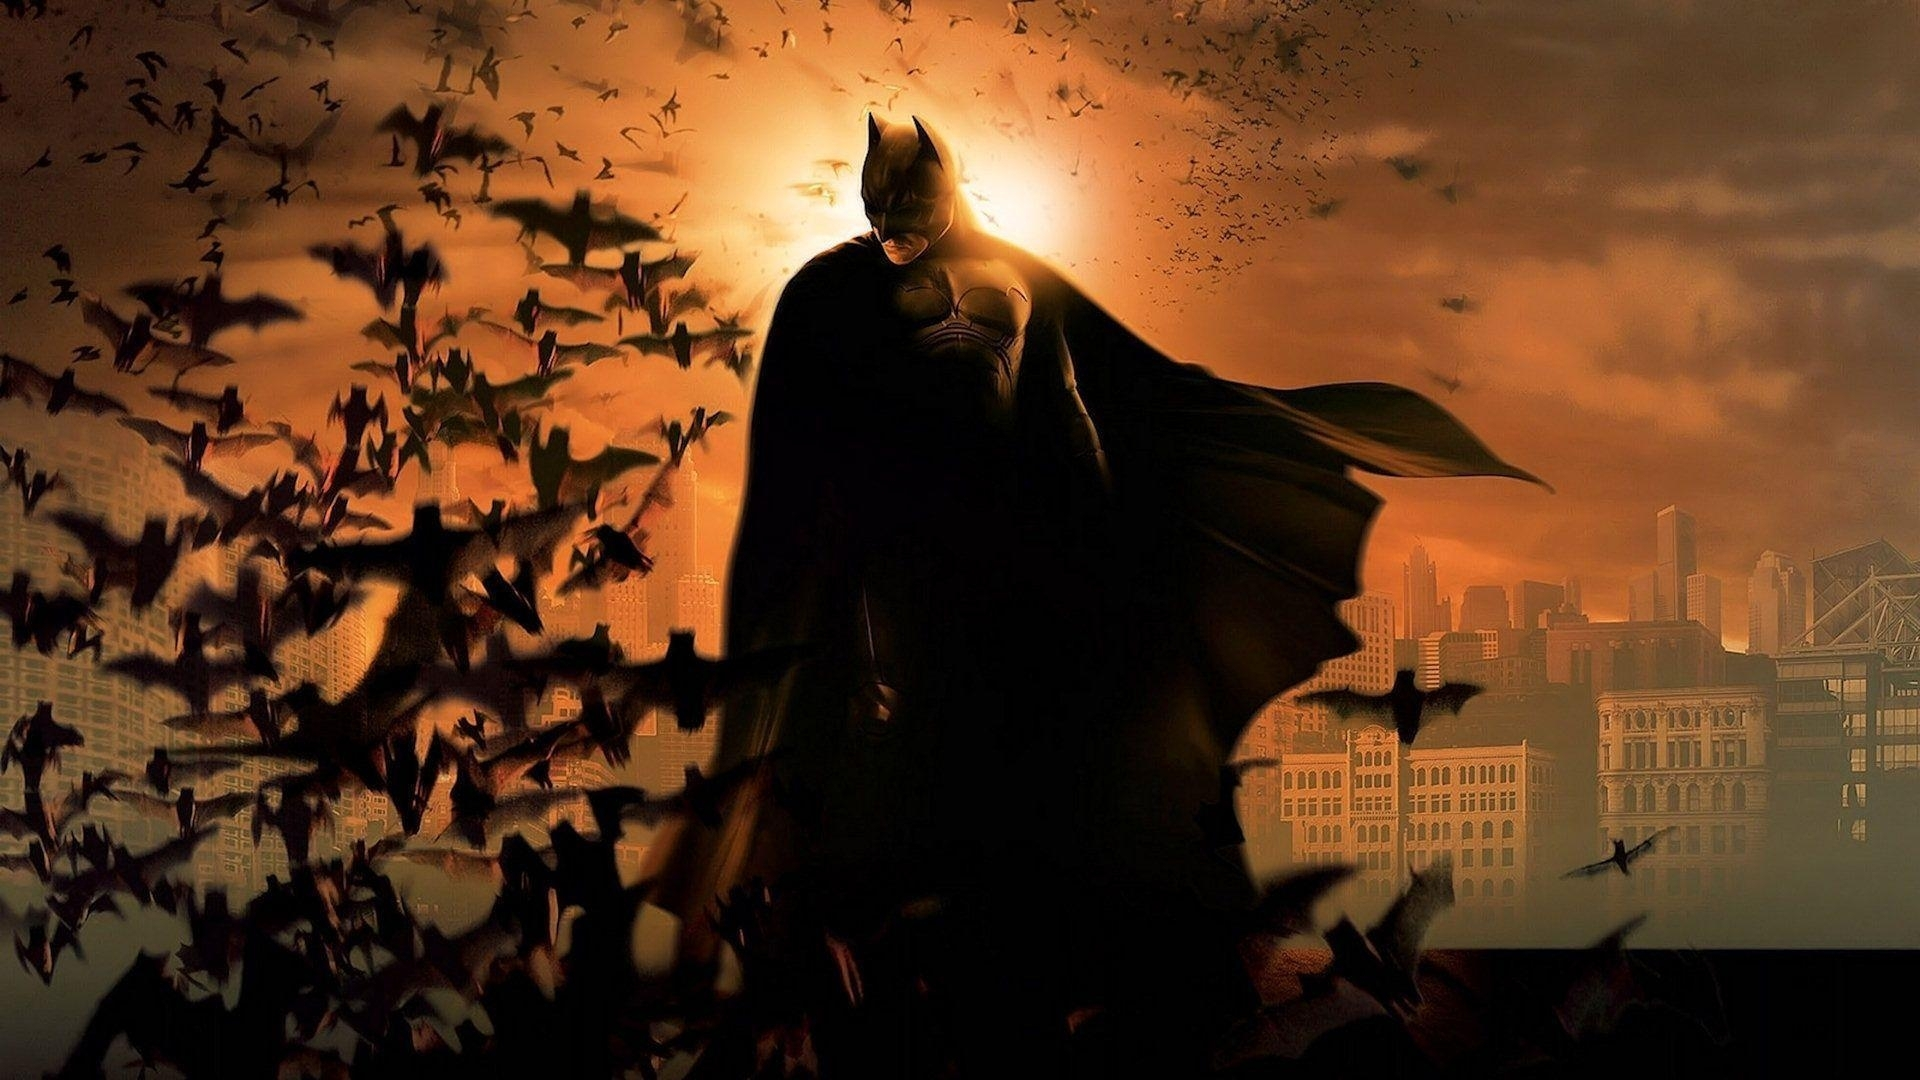 batman wallpapers 1920x1080 - wallpaper cave